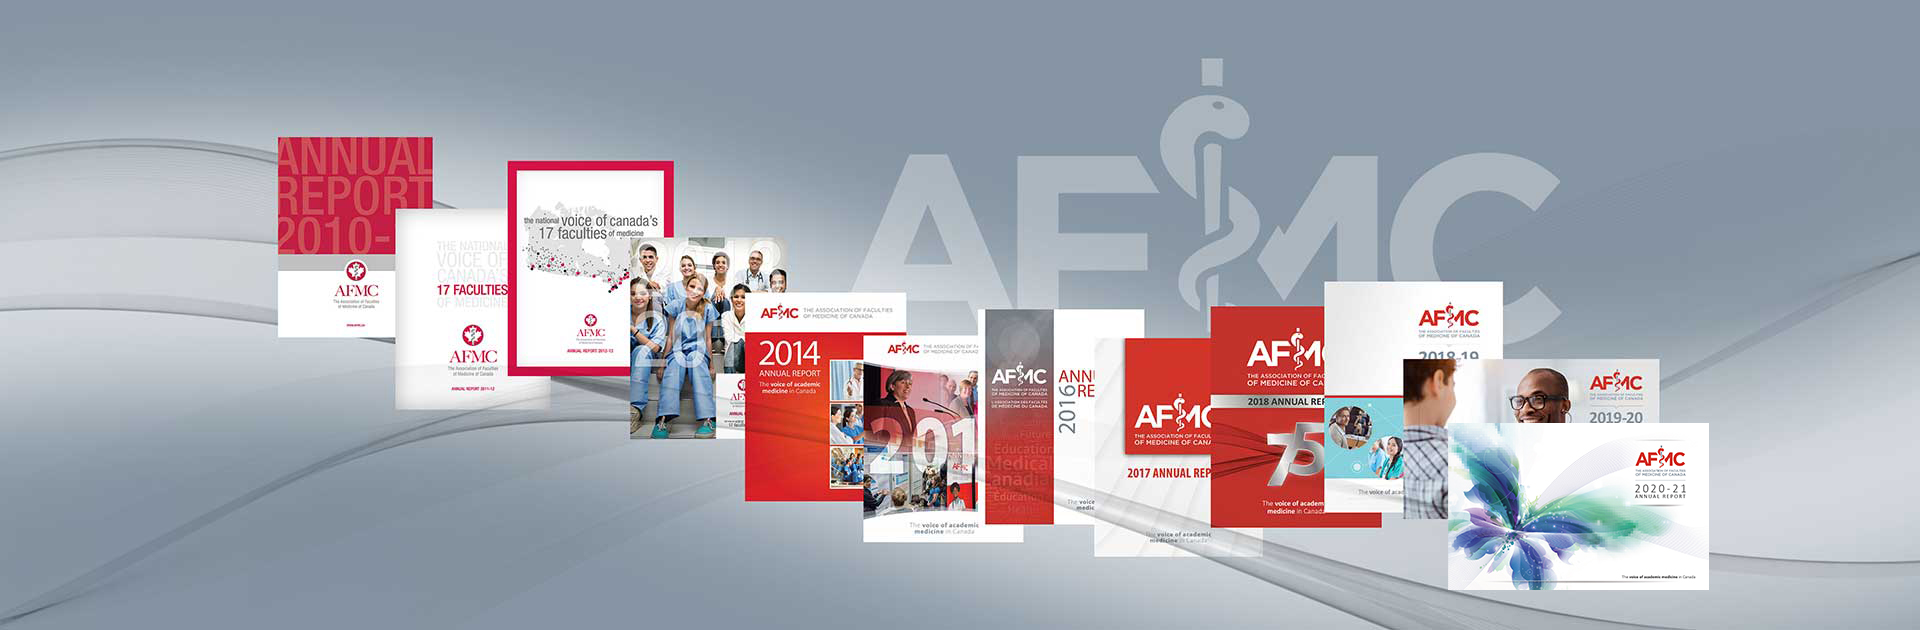 screenshot of Annual report covers